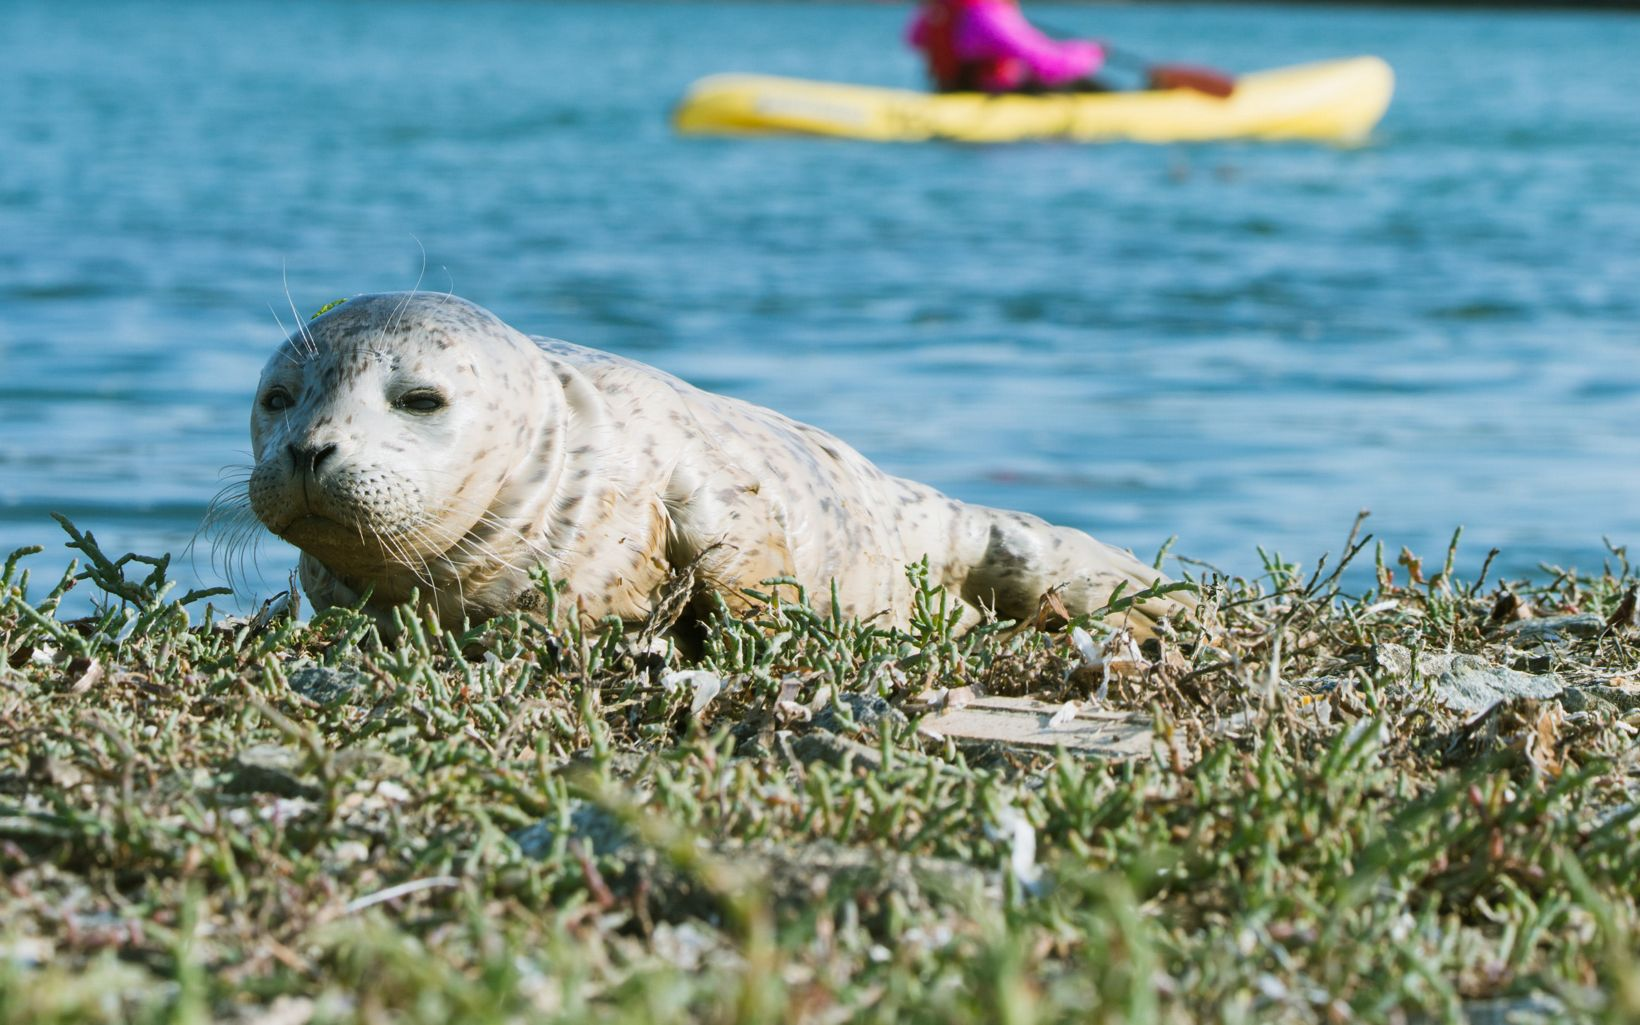 A kayaker passes by a lone harbor seal pup (Phoca vitulina) resting on the banks of the lower Elkhorn Slough in Monterey County, California